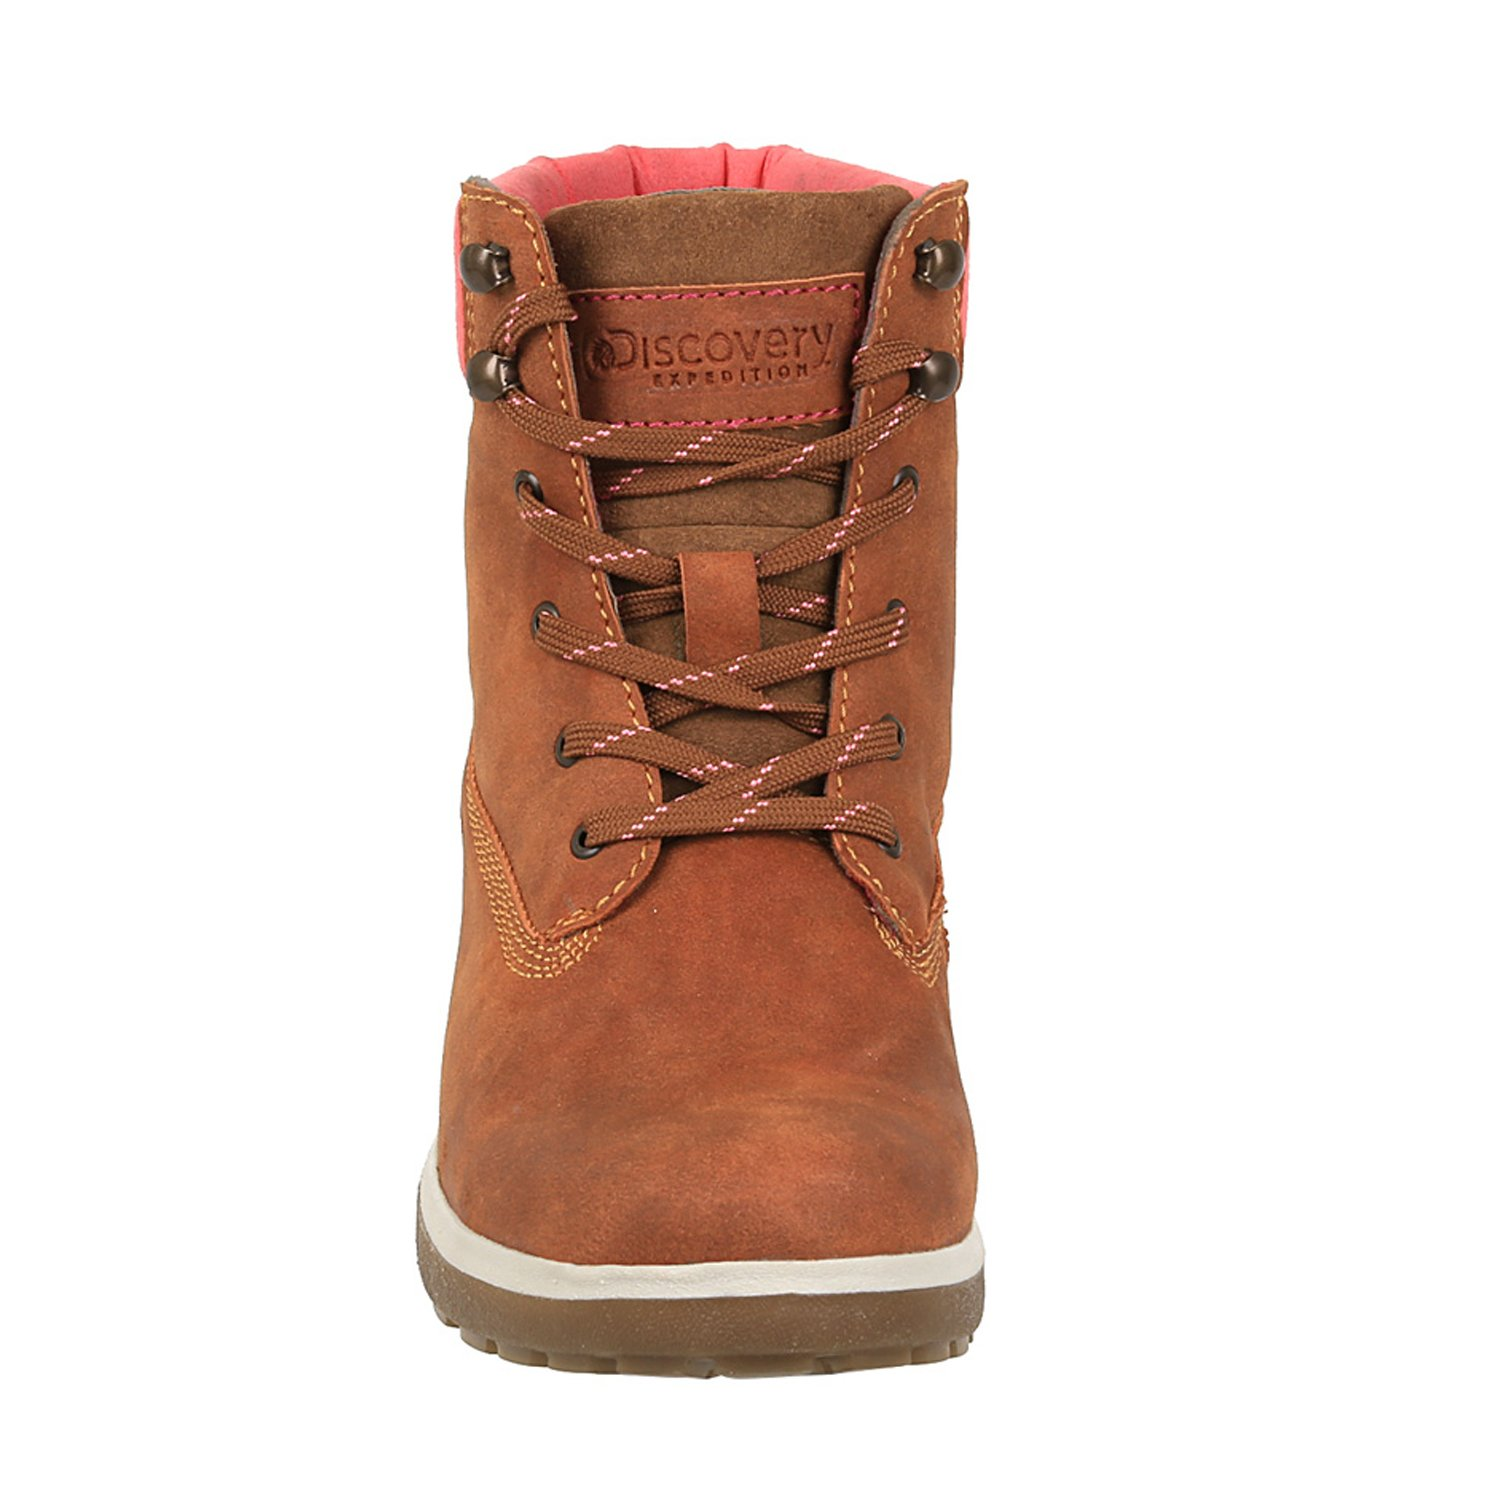 Discovery Expedition Women's Adventure High Top Lace up Hiking Boot Cinnamon Size 9.5 by Discovery Expedition (Image #3)